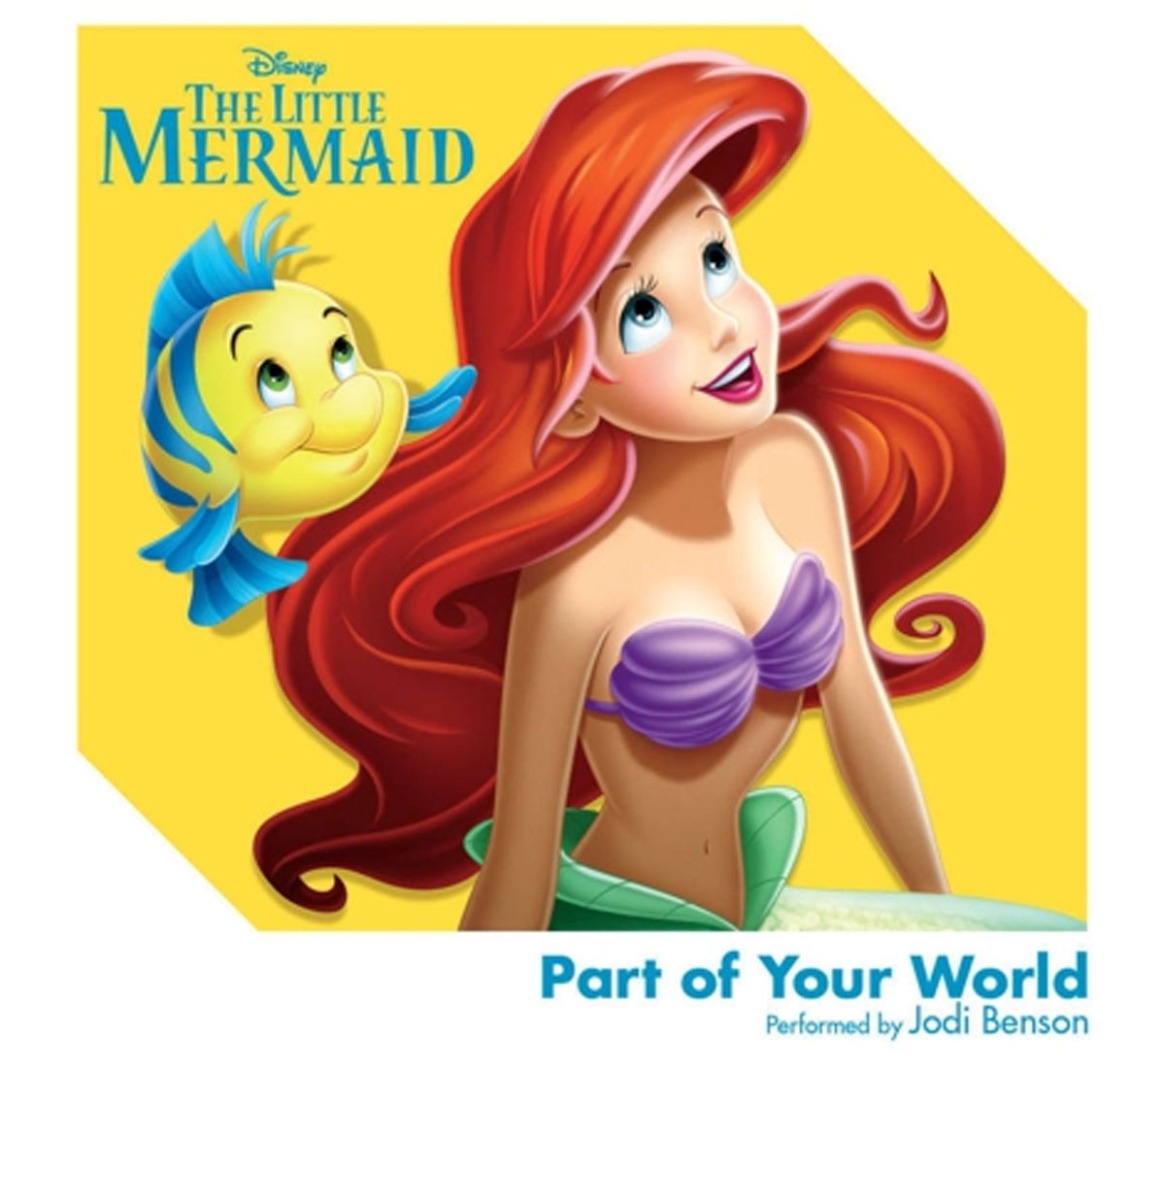 Disney's The Little Mermaid 3 Inch Mini Single - Part of Your World